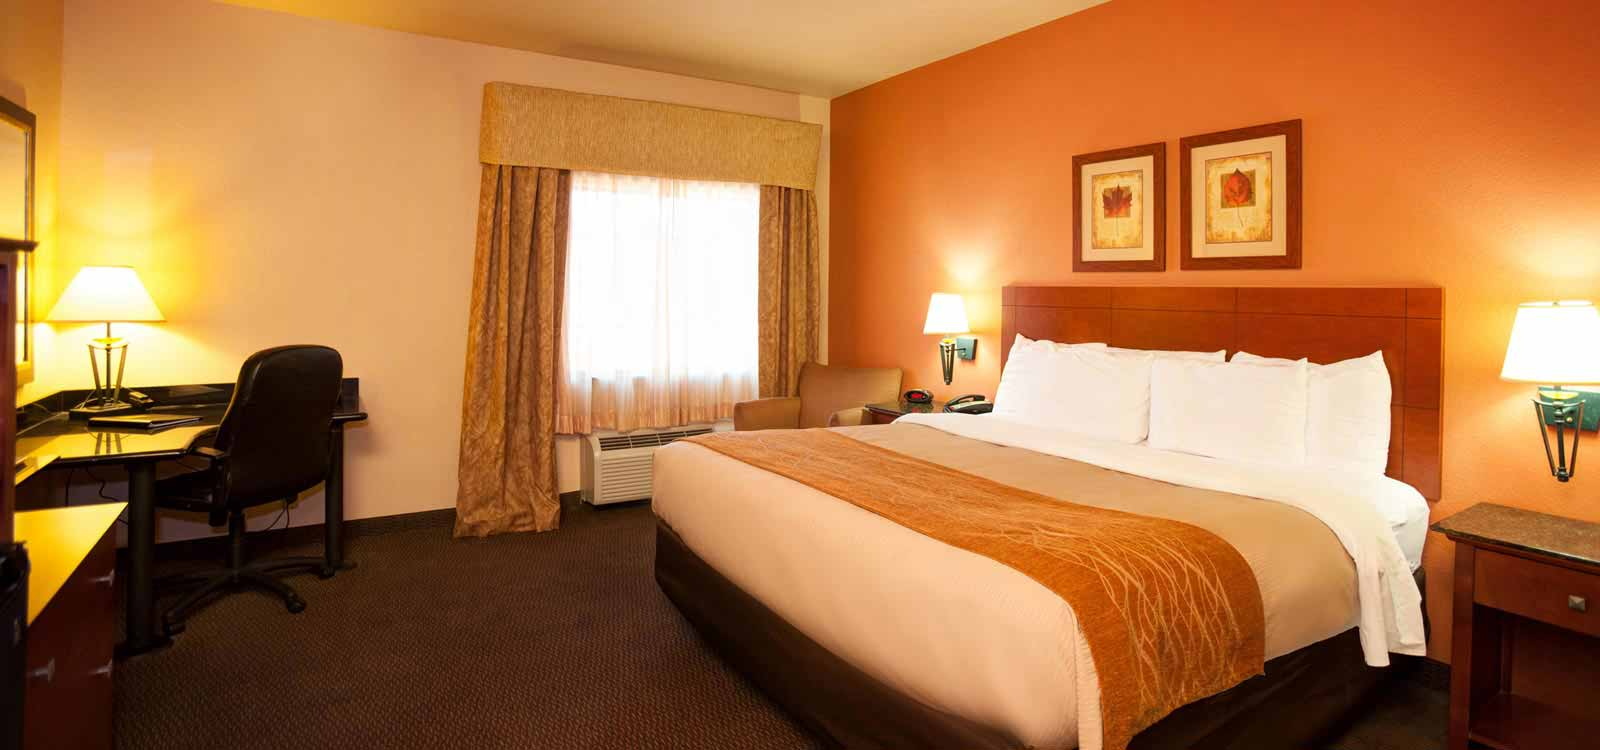 Hotel Ruidoso Budget Hotels Discount Holiday Hotel New